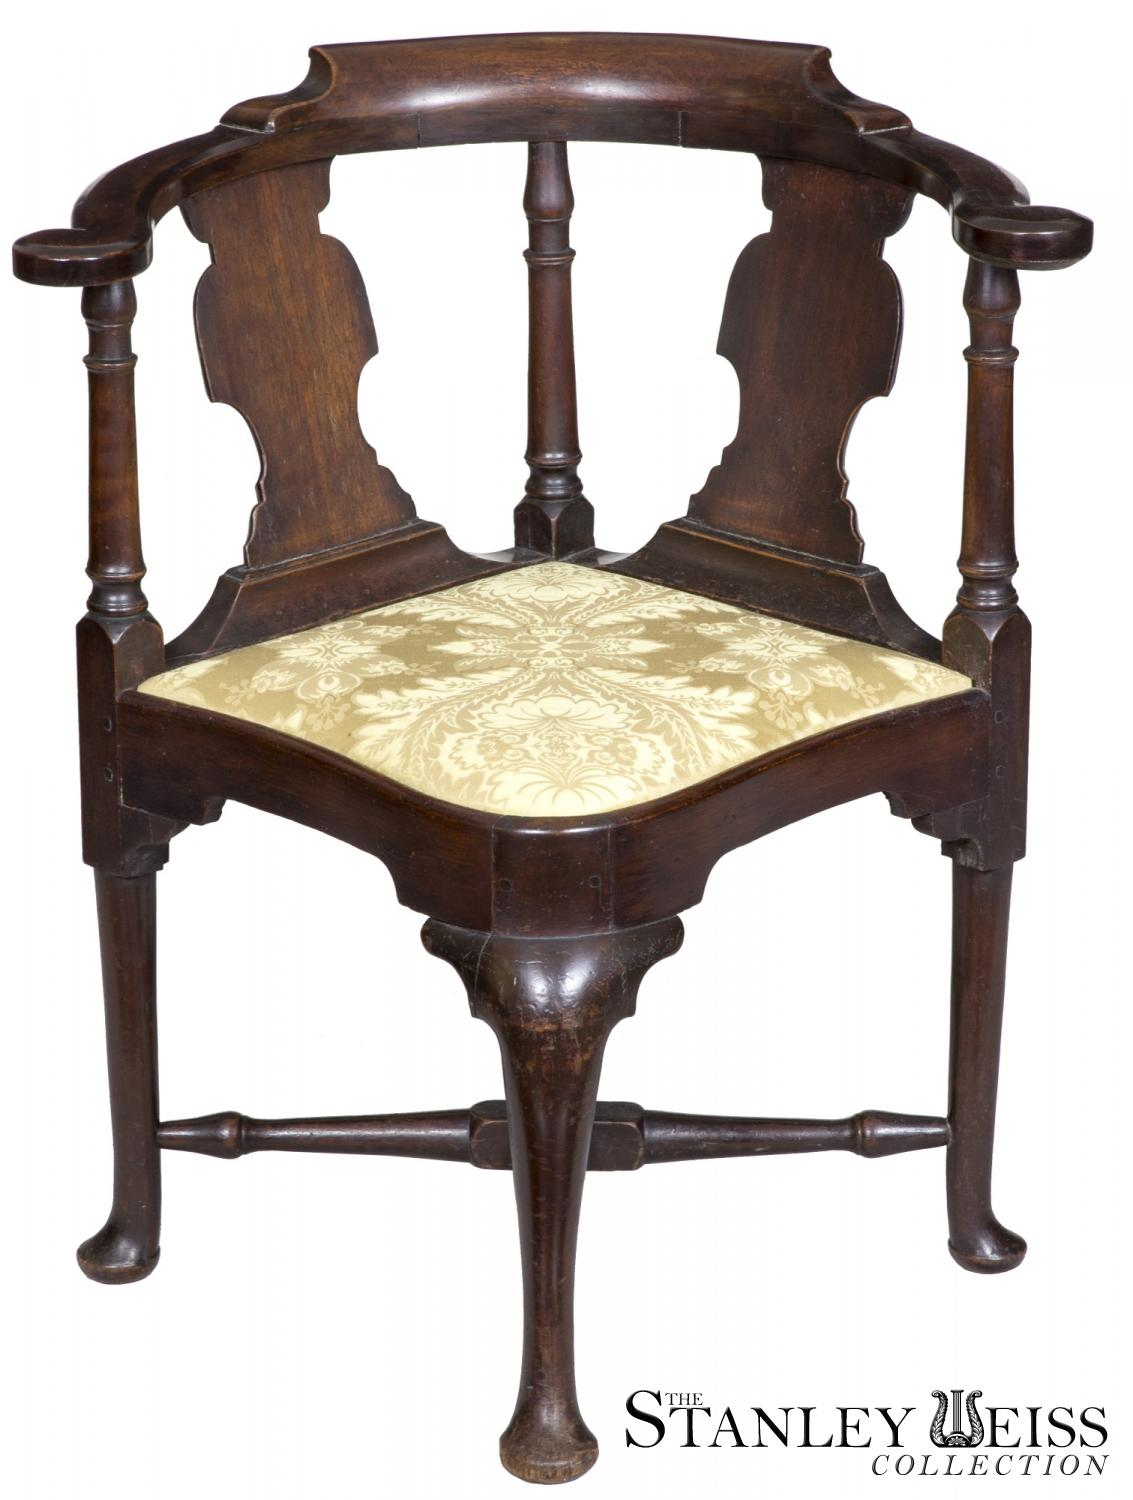 A Mahogany Queen Anne Corner Chair With Horseshoe Seat Boston, C.1770